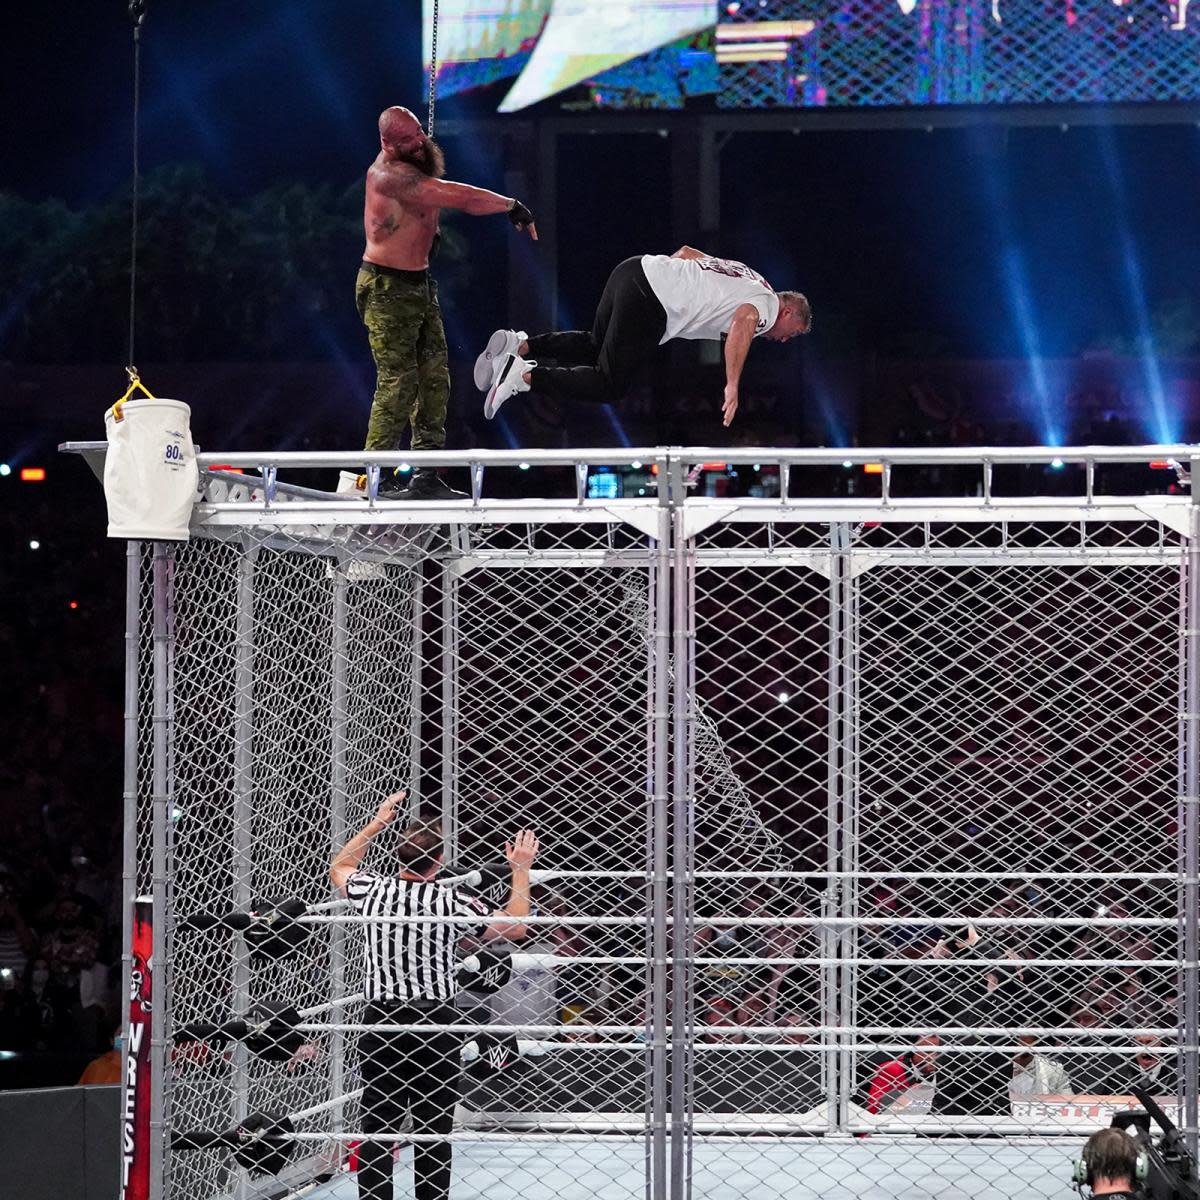 Braun Strowman throws Shane McMahon from the top of a steel cage